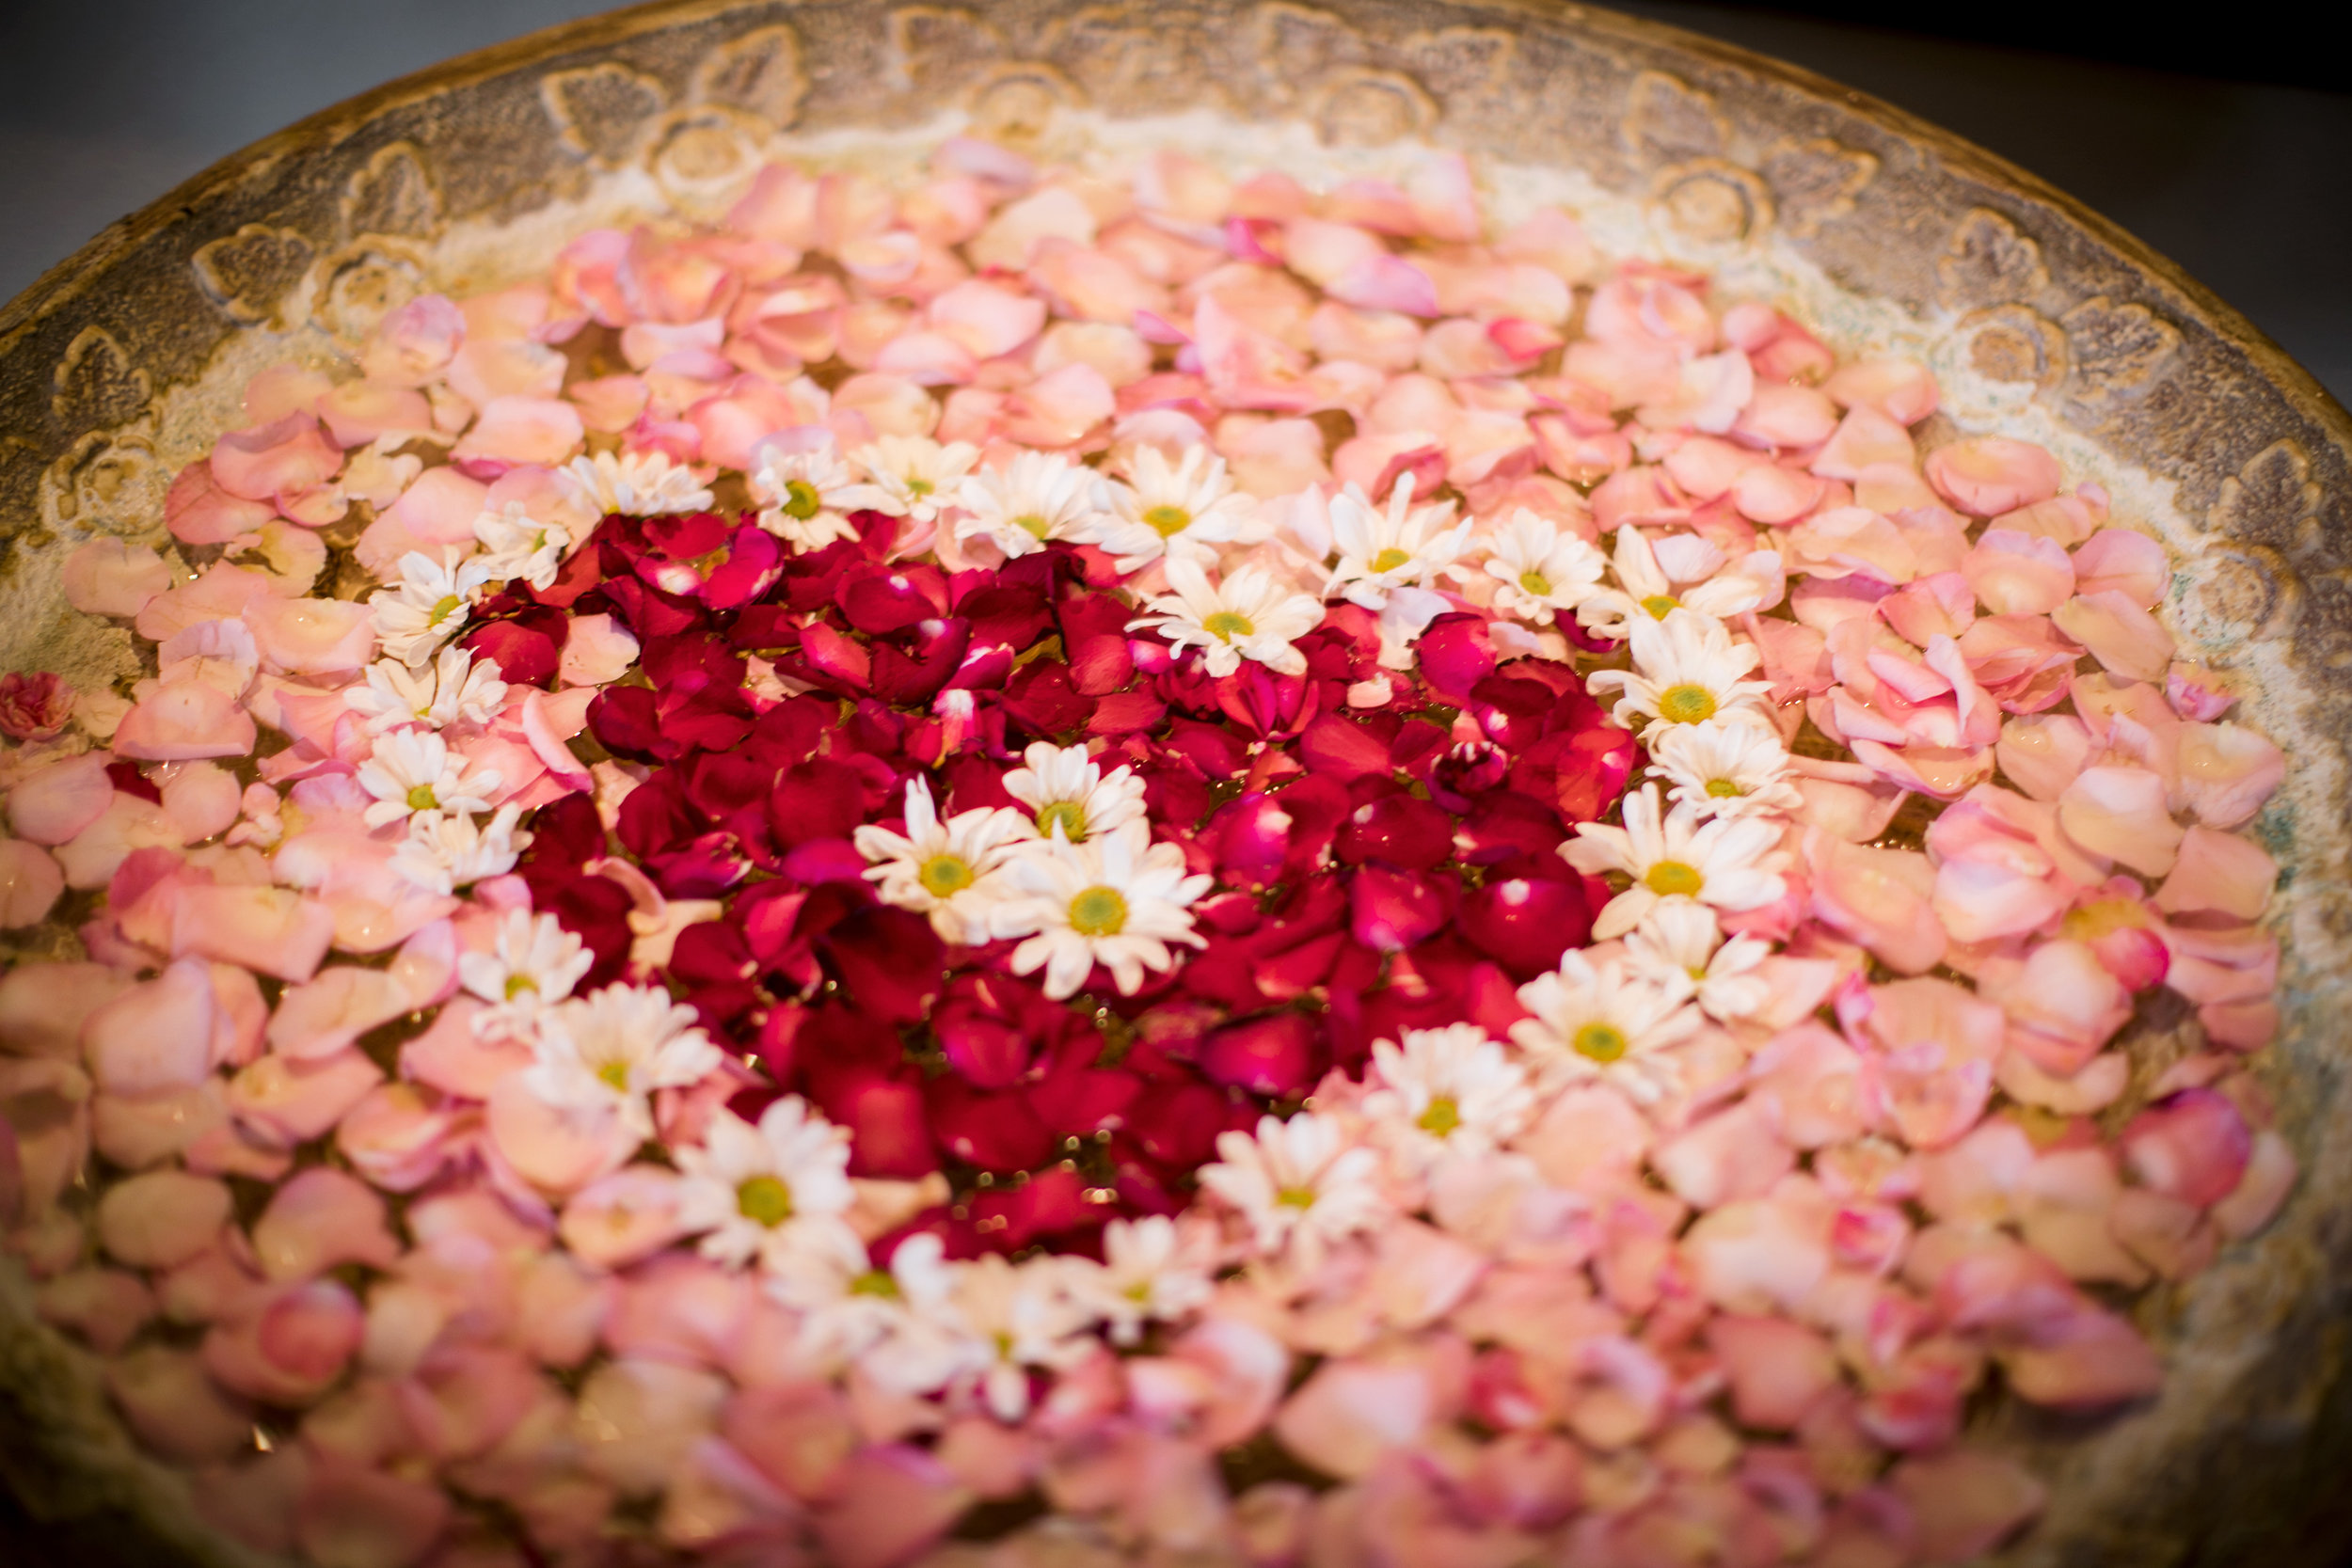 Discover the best of Balinese luxury, service and tradition - Many exclusive luxury resorts feel the same, like they could be anywhere – not the Royal Pita Maha. Here, you immerse yourself in all the things that make Bali so special. From the stunning natural beauty of the island, to the deep spirituality of Balinese culture, to the famous opulence of Bali's architecture and design, this is your chance to make the most of getting married in Bali.